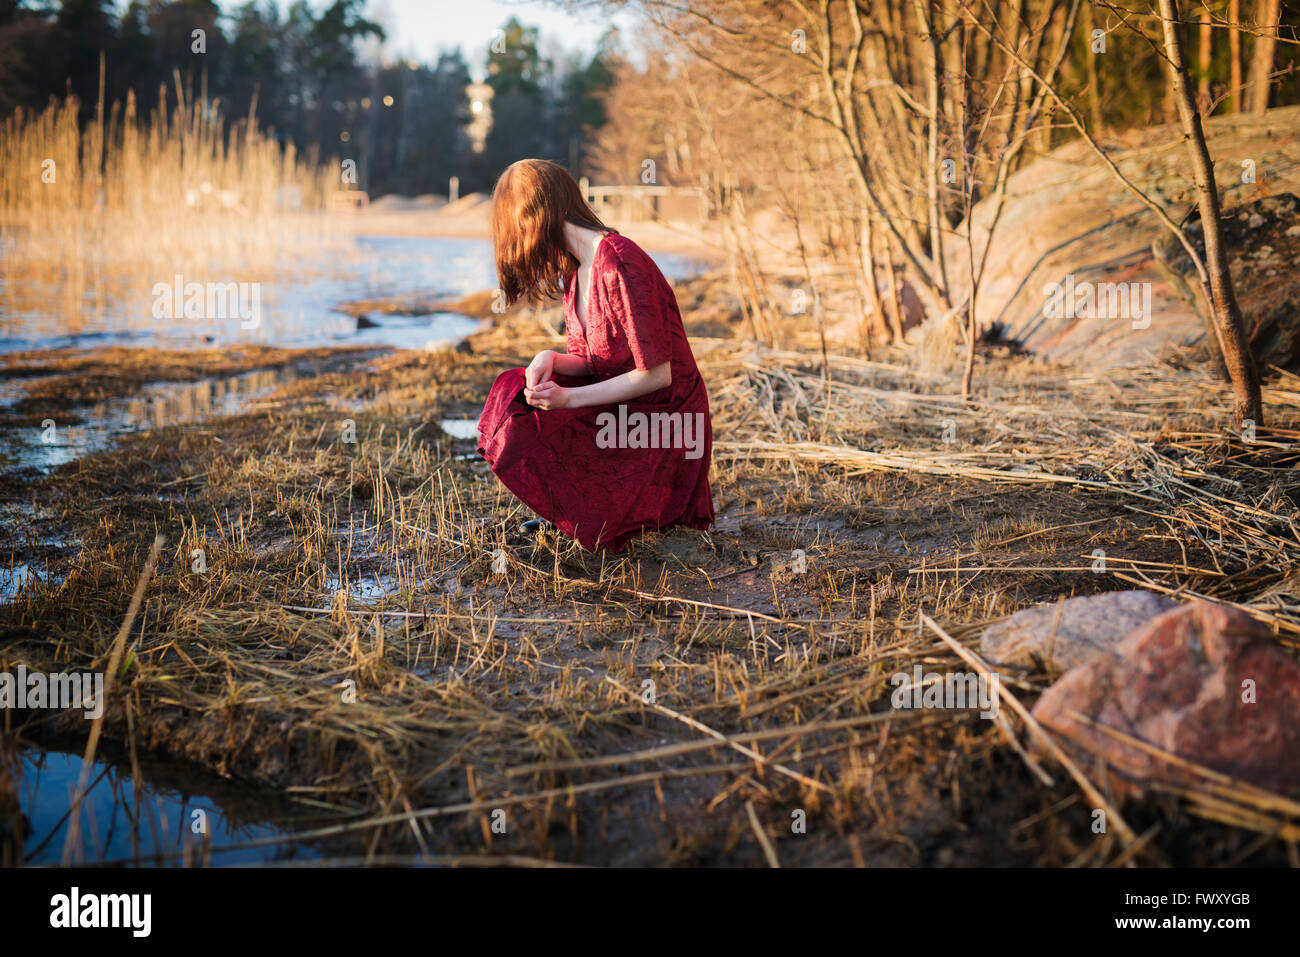 Finland, Varsinais-Suomi, Young woman crouching in wetlands Stock Photo